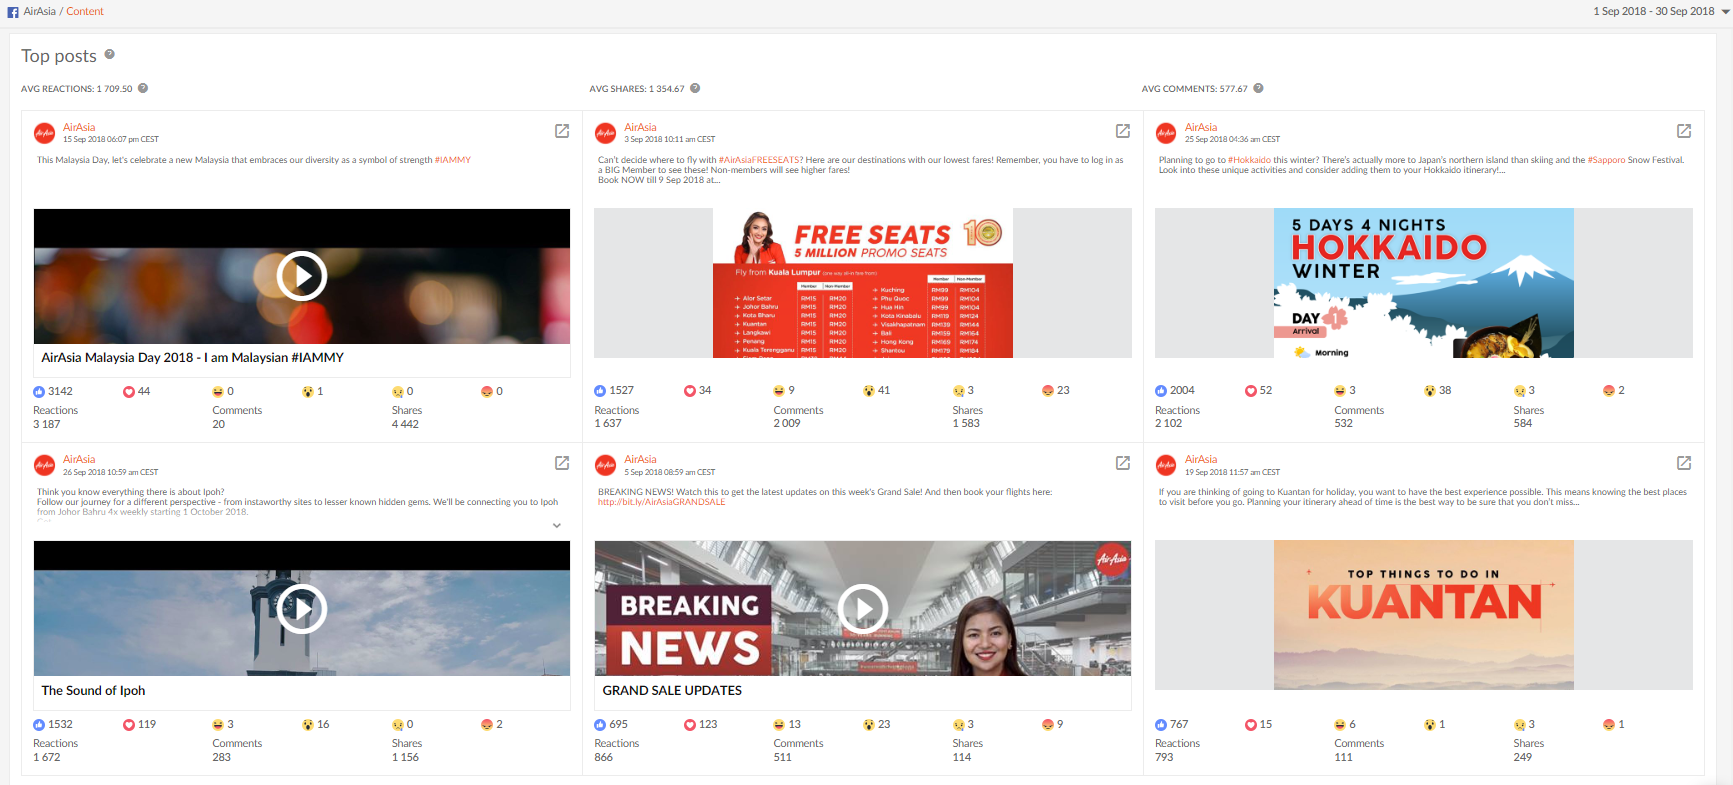 AirAsia best posts on Facebook in September 2018